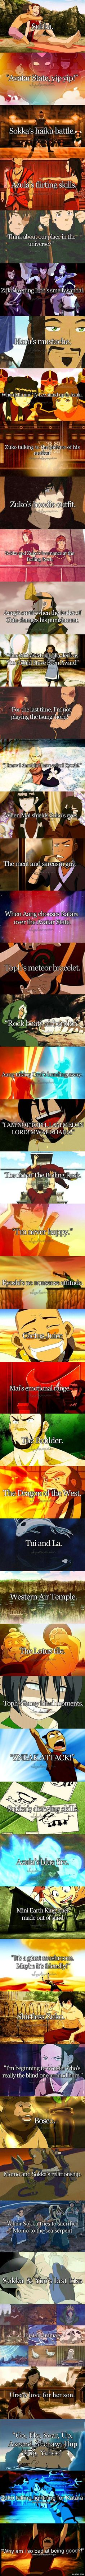 Why I love Avatar: The Last Airbender <3.When Aang chooses Katara over the avatar state <3.Well that's amazing just saw this episode< THE FEELS!